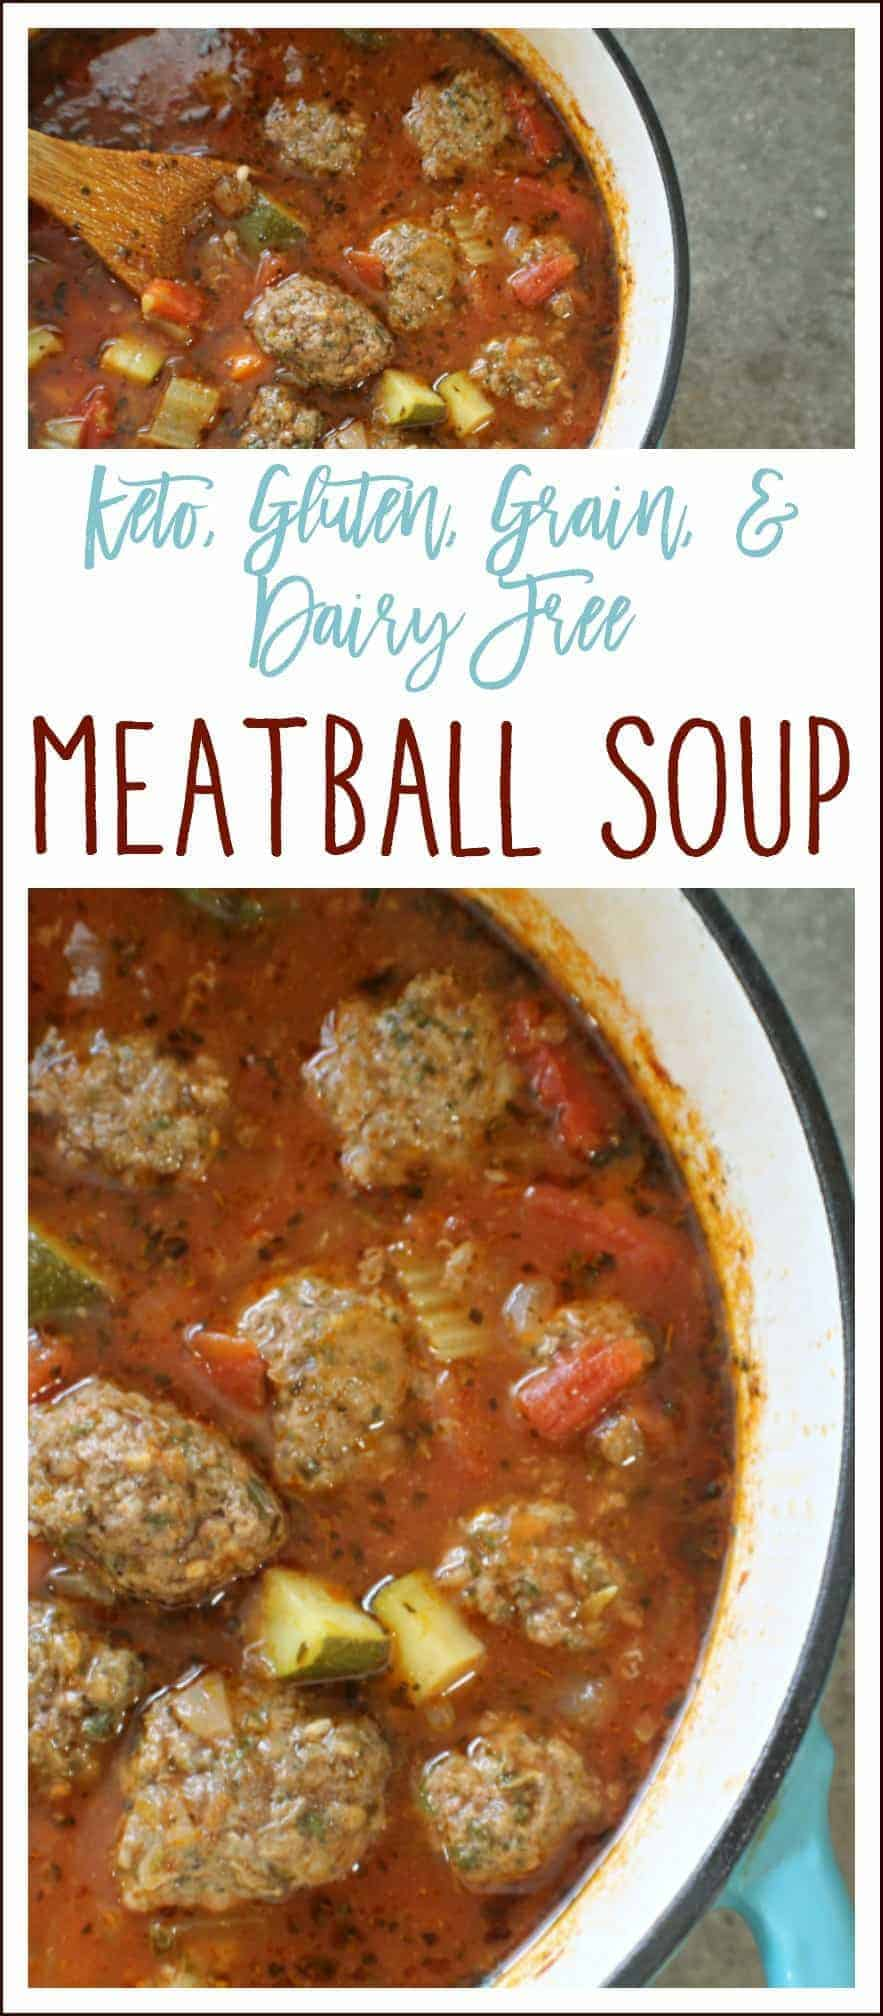 This meatball soup is easy to prepare, hearty, and loaded with fresh veggies and flavor. Best of all, the meatballs can be made ahead of time and it freezes nicely.  #Keto #KetoDinner #MeatballSoup #Whole30 #LowCarb #PaleoMeatballSoup #PaleoDinner #MealPrep #Keto #KetoFreezerDinner #KetoMeatballSoup